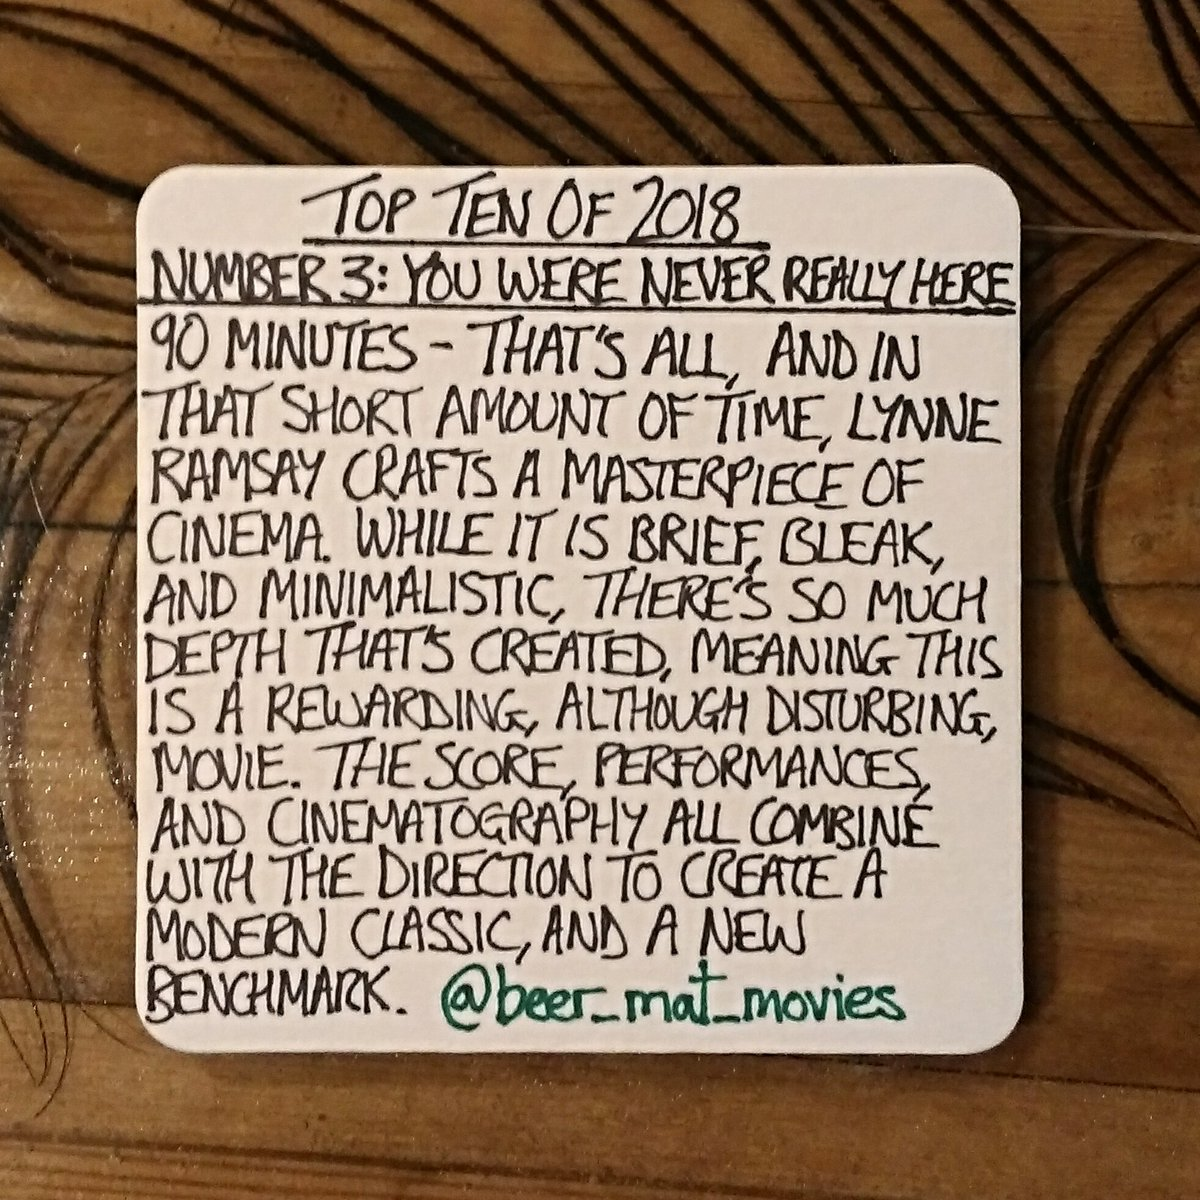 Beer Mat Movies On Twitter Top Ten Of 2018 Number 3 You Were